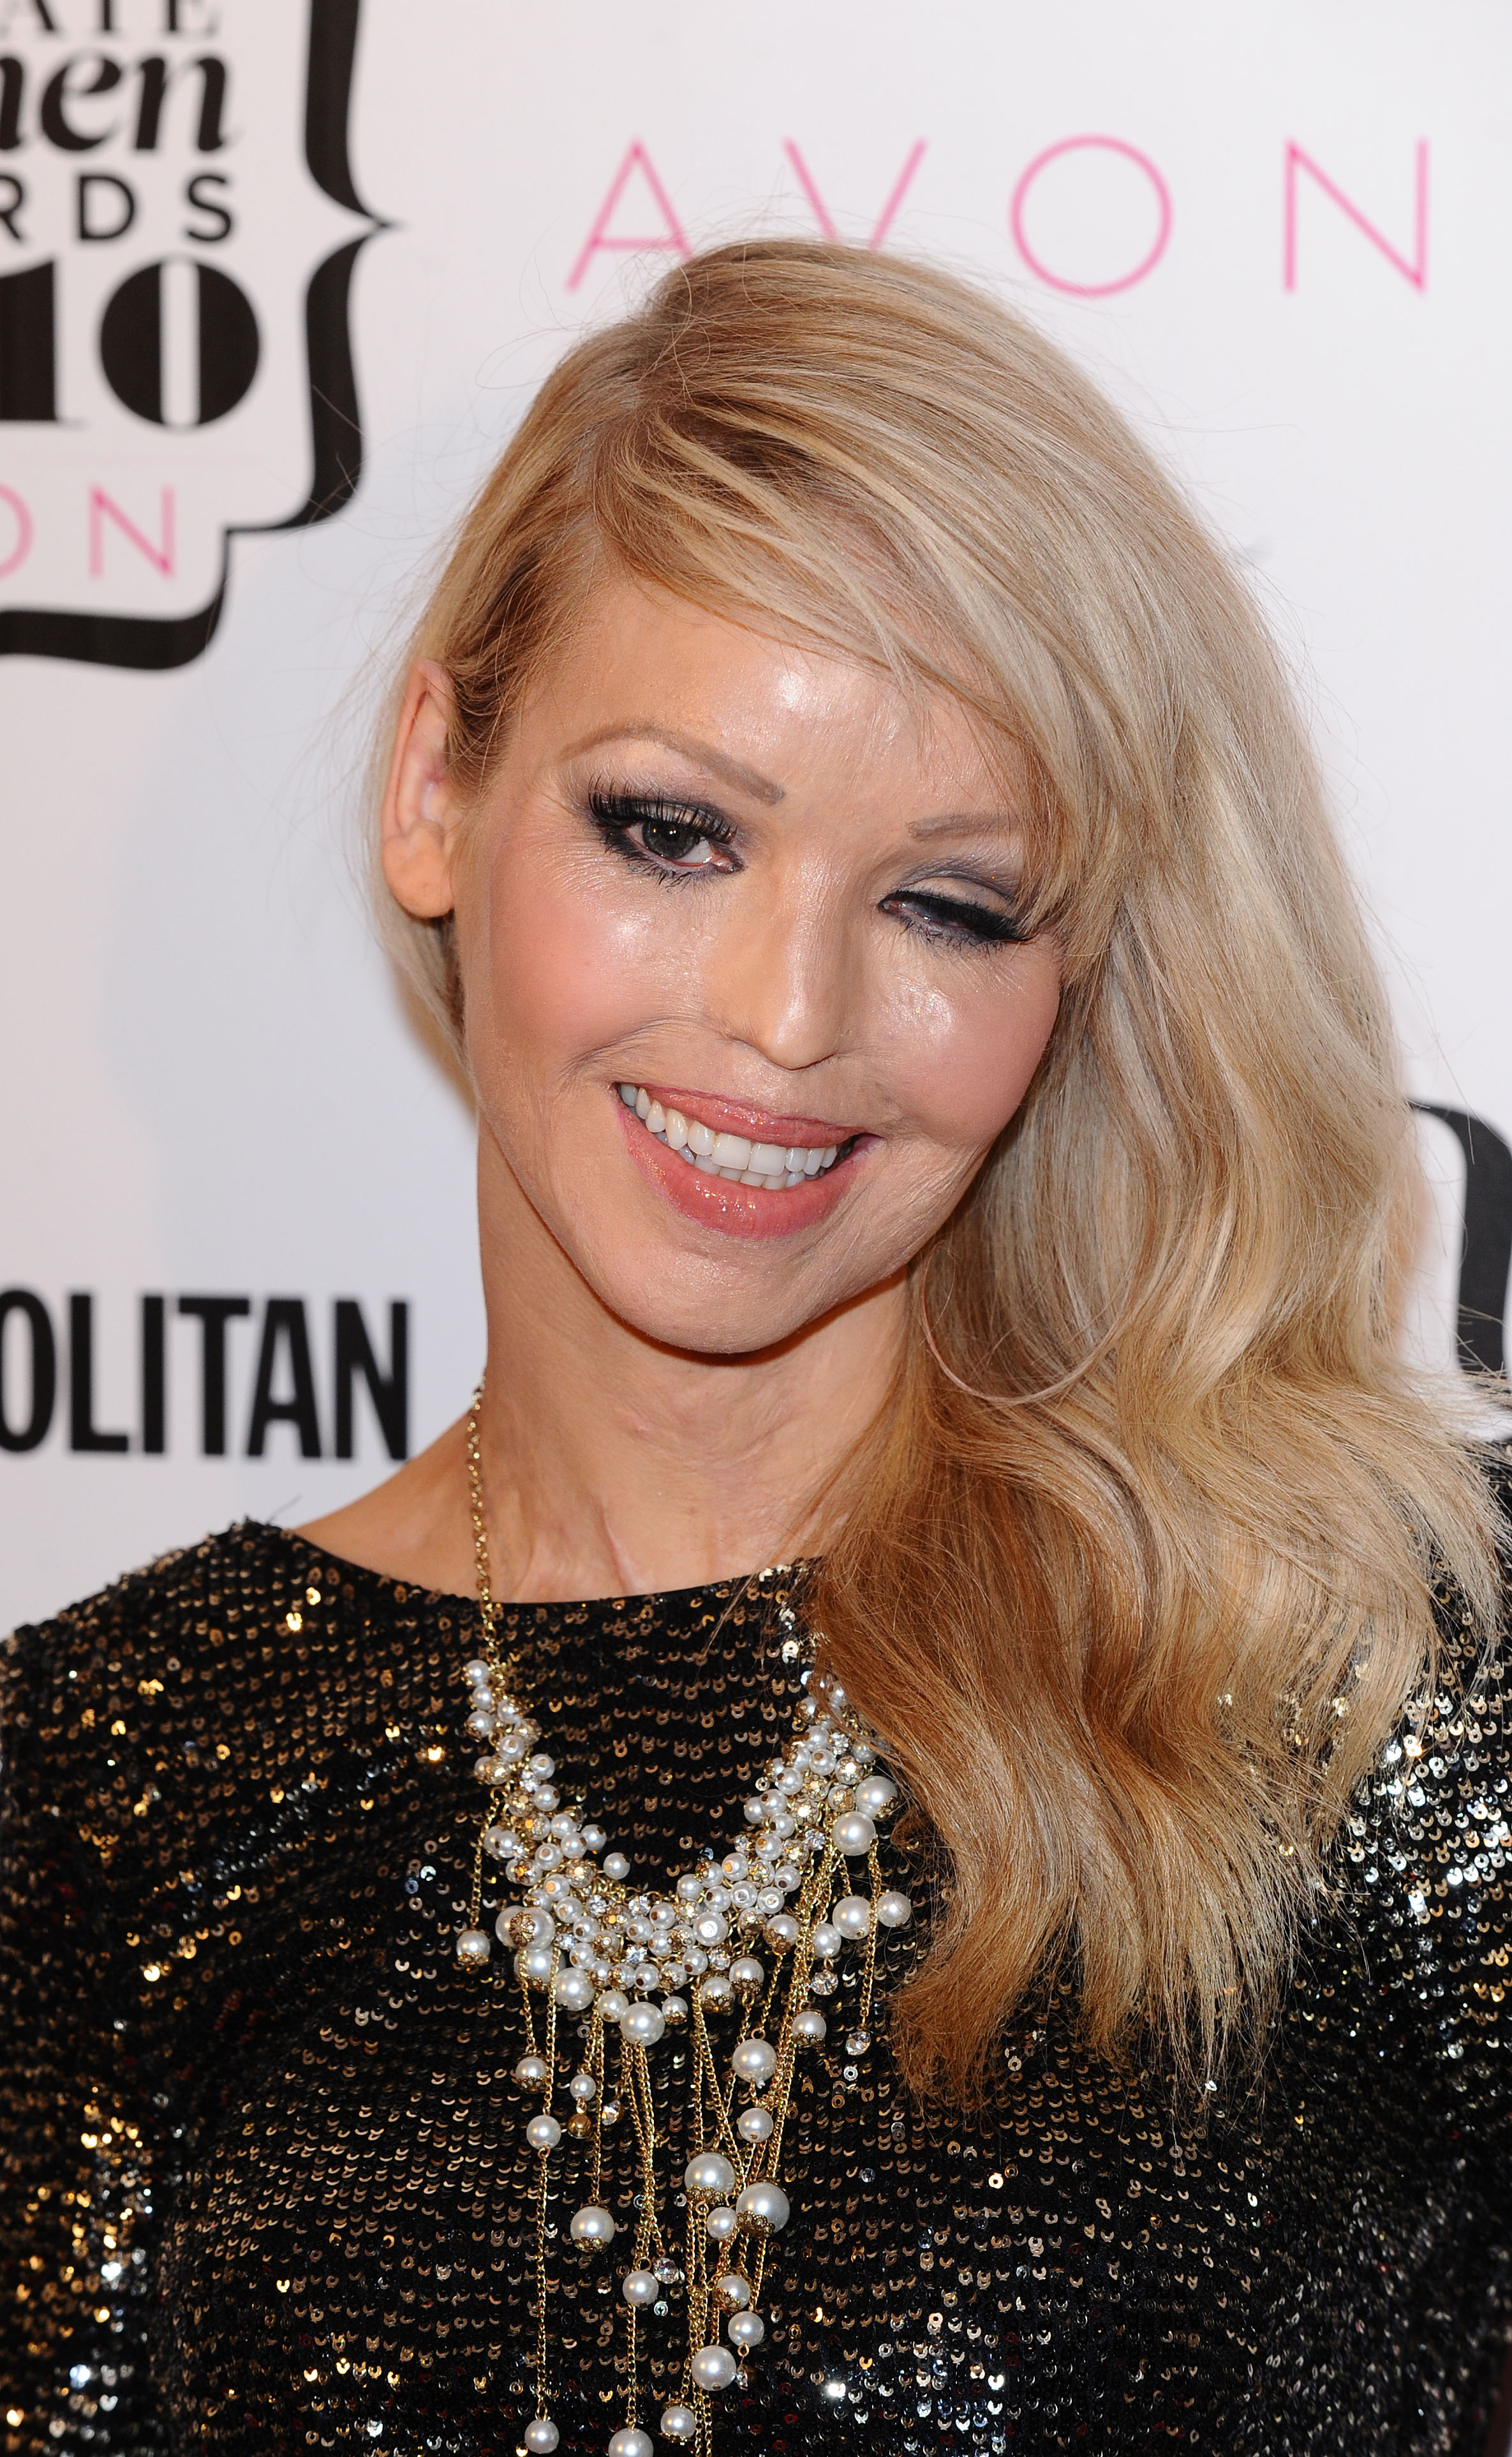 Katie Piper: 'I feel confident with who I am now'